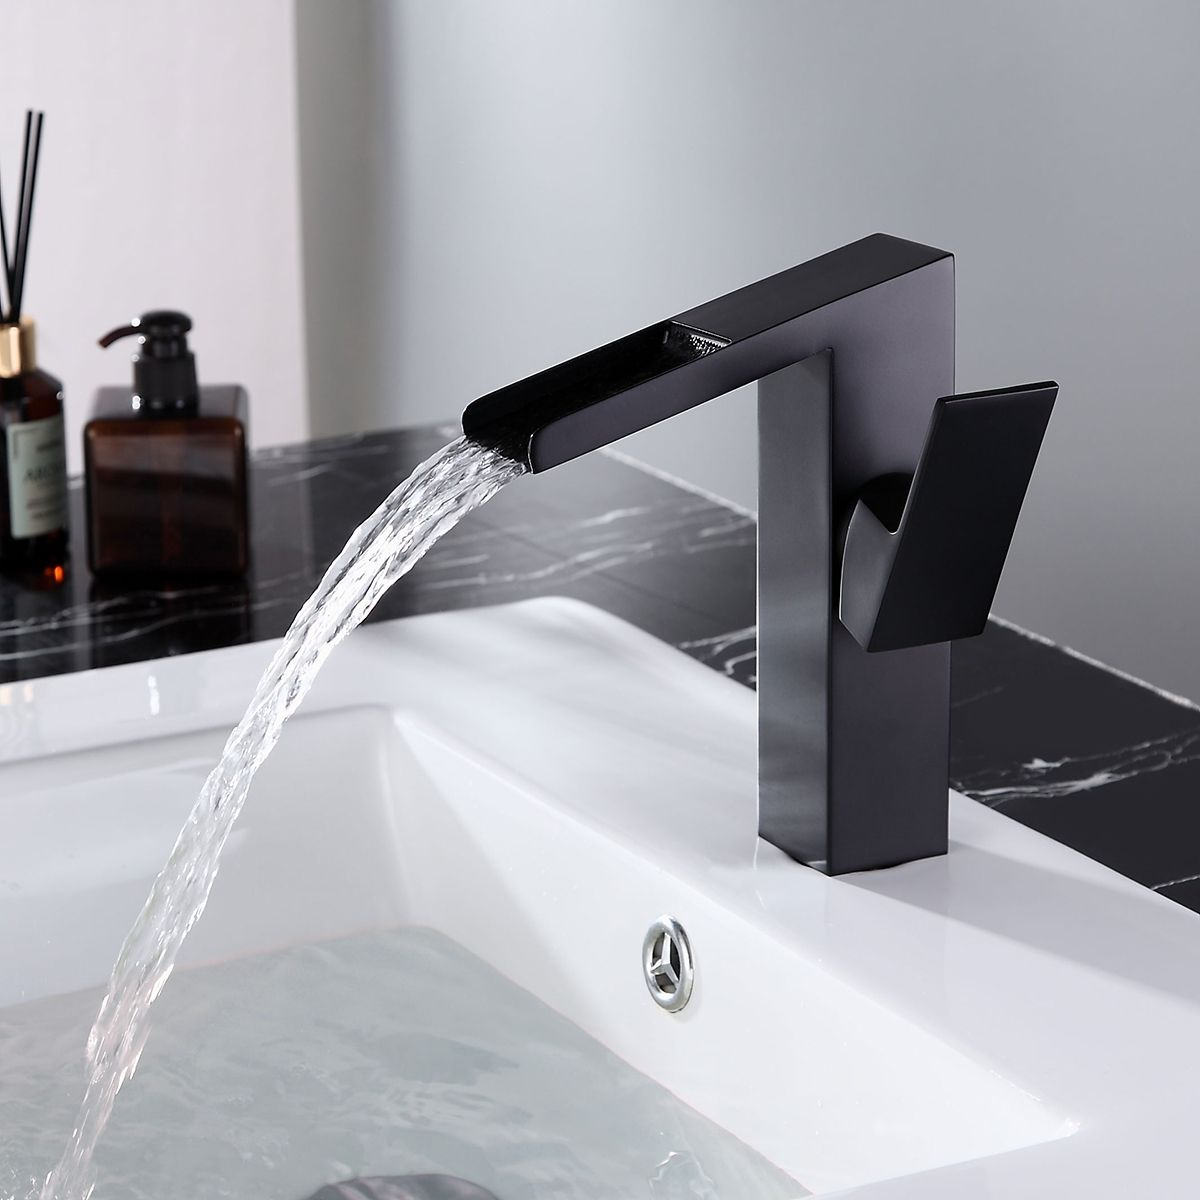 Quad Square Slanted Single Hole 1 Handle Waterfall Faucet Solid Brass For Bathroom Sink In Matte Black Faucet Design Waterfall Faucet Black Bathroom Sink